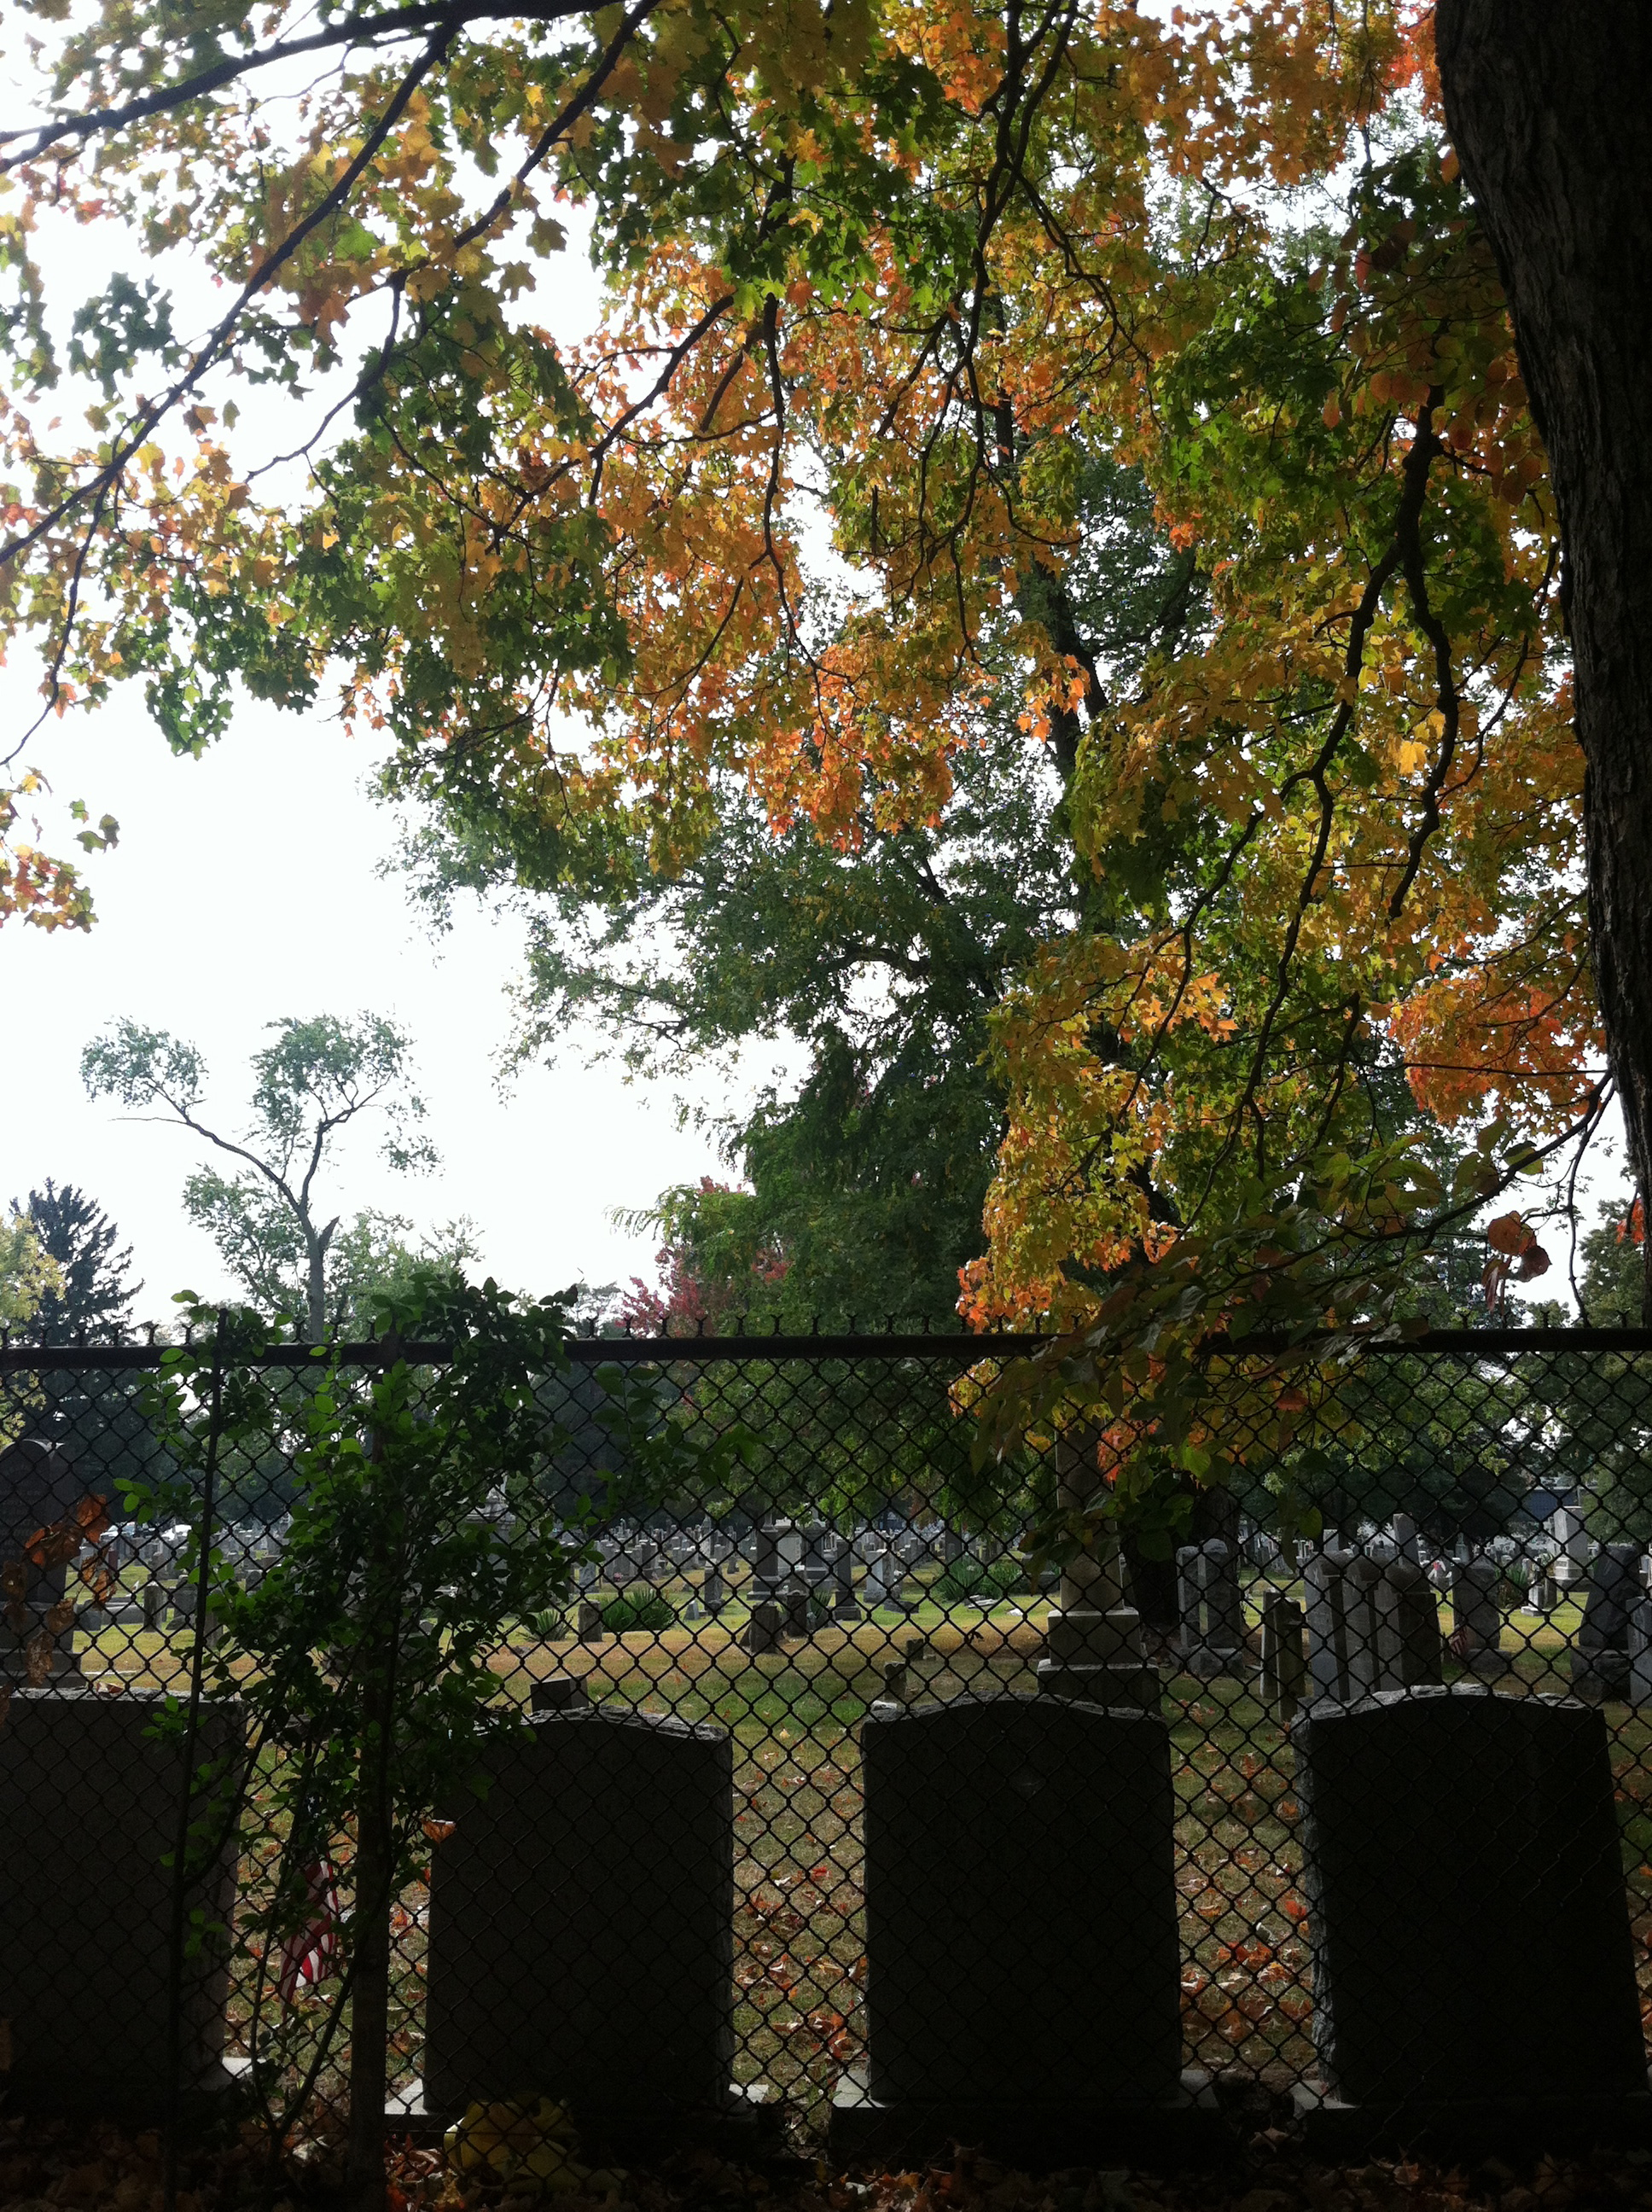 And then we went to a Jersey Cemetery Oct 19, 2013 157